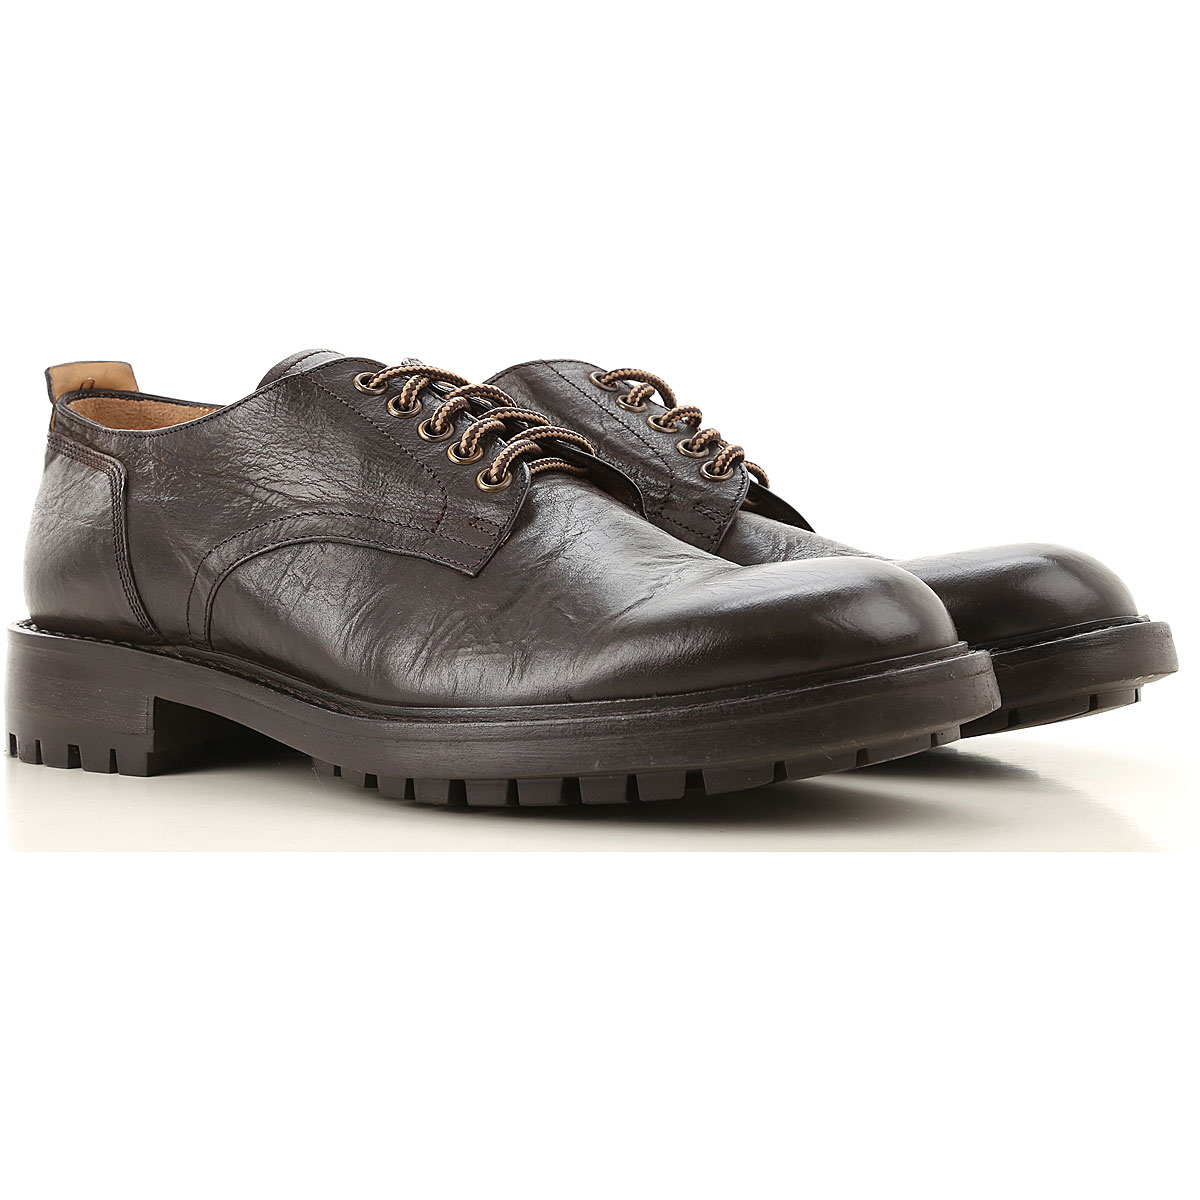 Seboys Lace Up Shoes for Men Oxfords, Derbies and Brogues On Sale, Dark Brown, Leather, 2019, 10 10.25 7.5 7.75 8 8.5